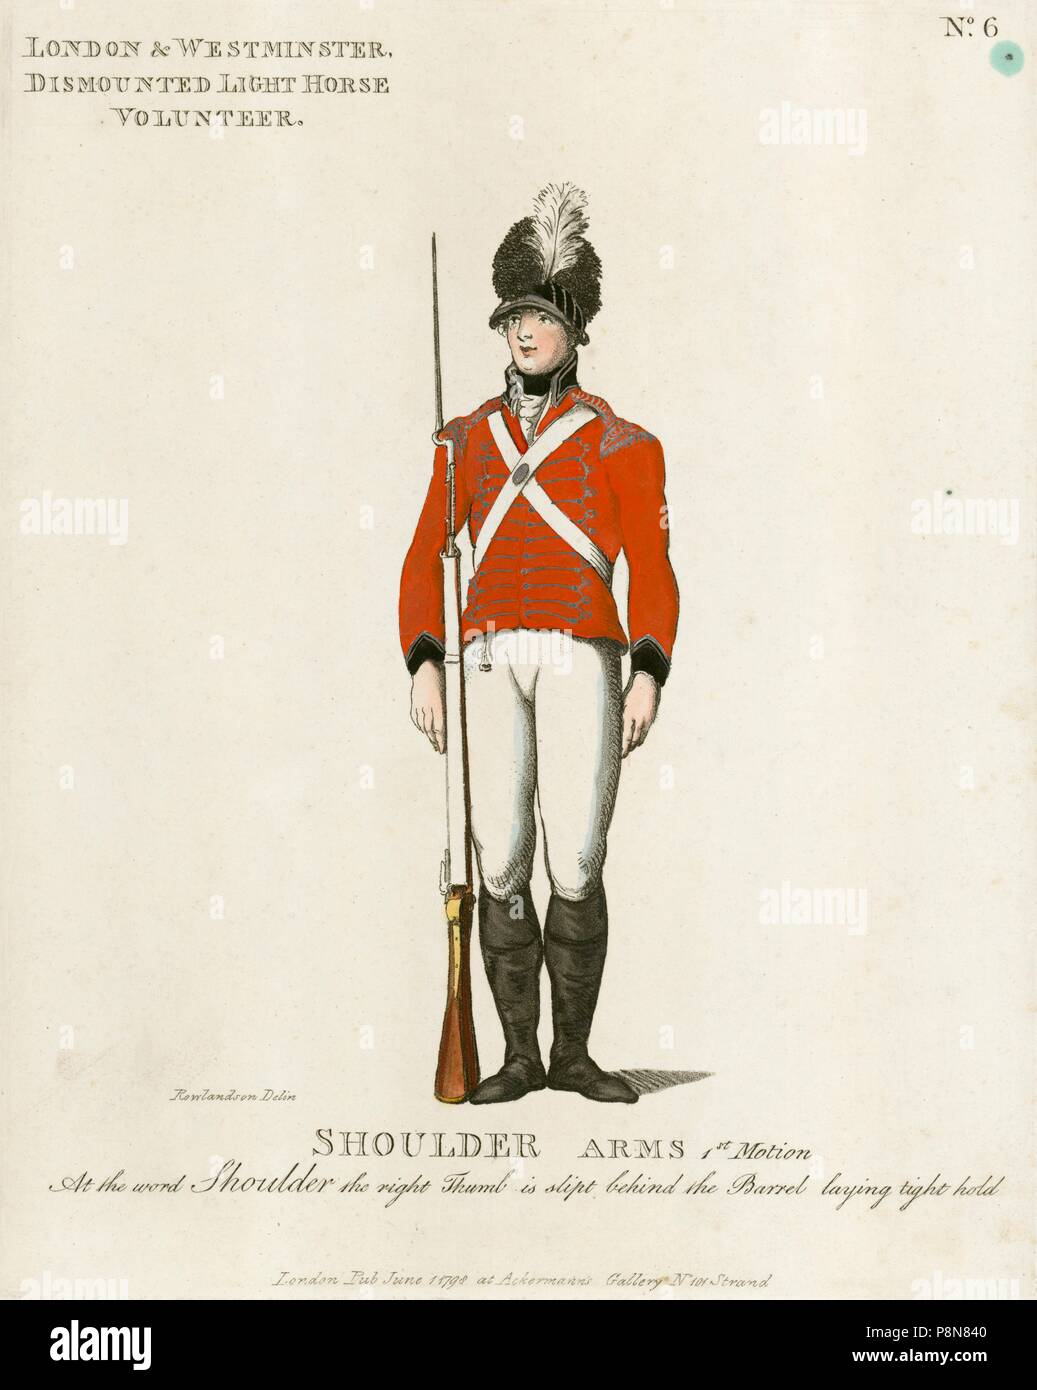 Dismounted volunteer of the London and Westminster Light Horse, 1798. Illustration from Loyal Volunteers of London 1798, a volume showing the uniforms - Stock Image